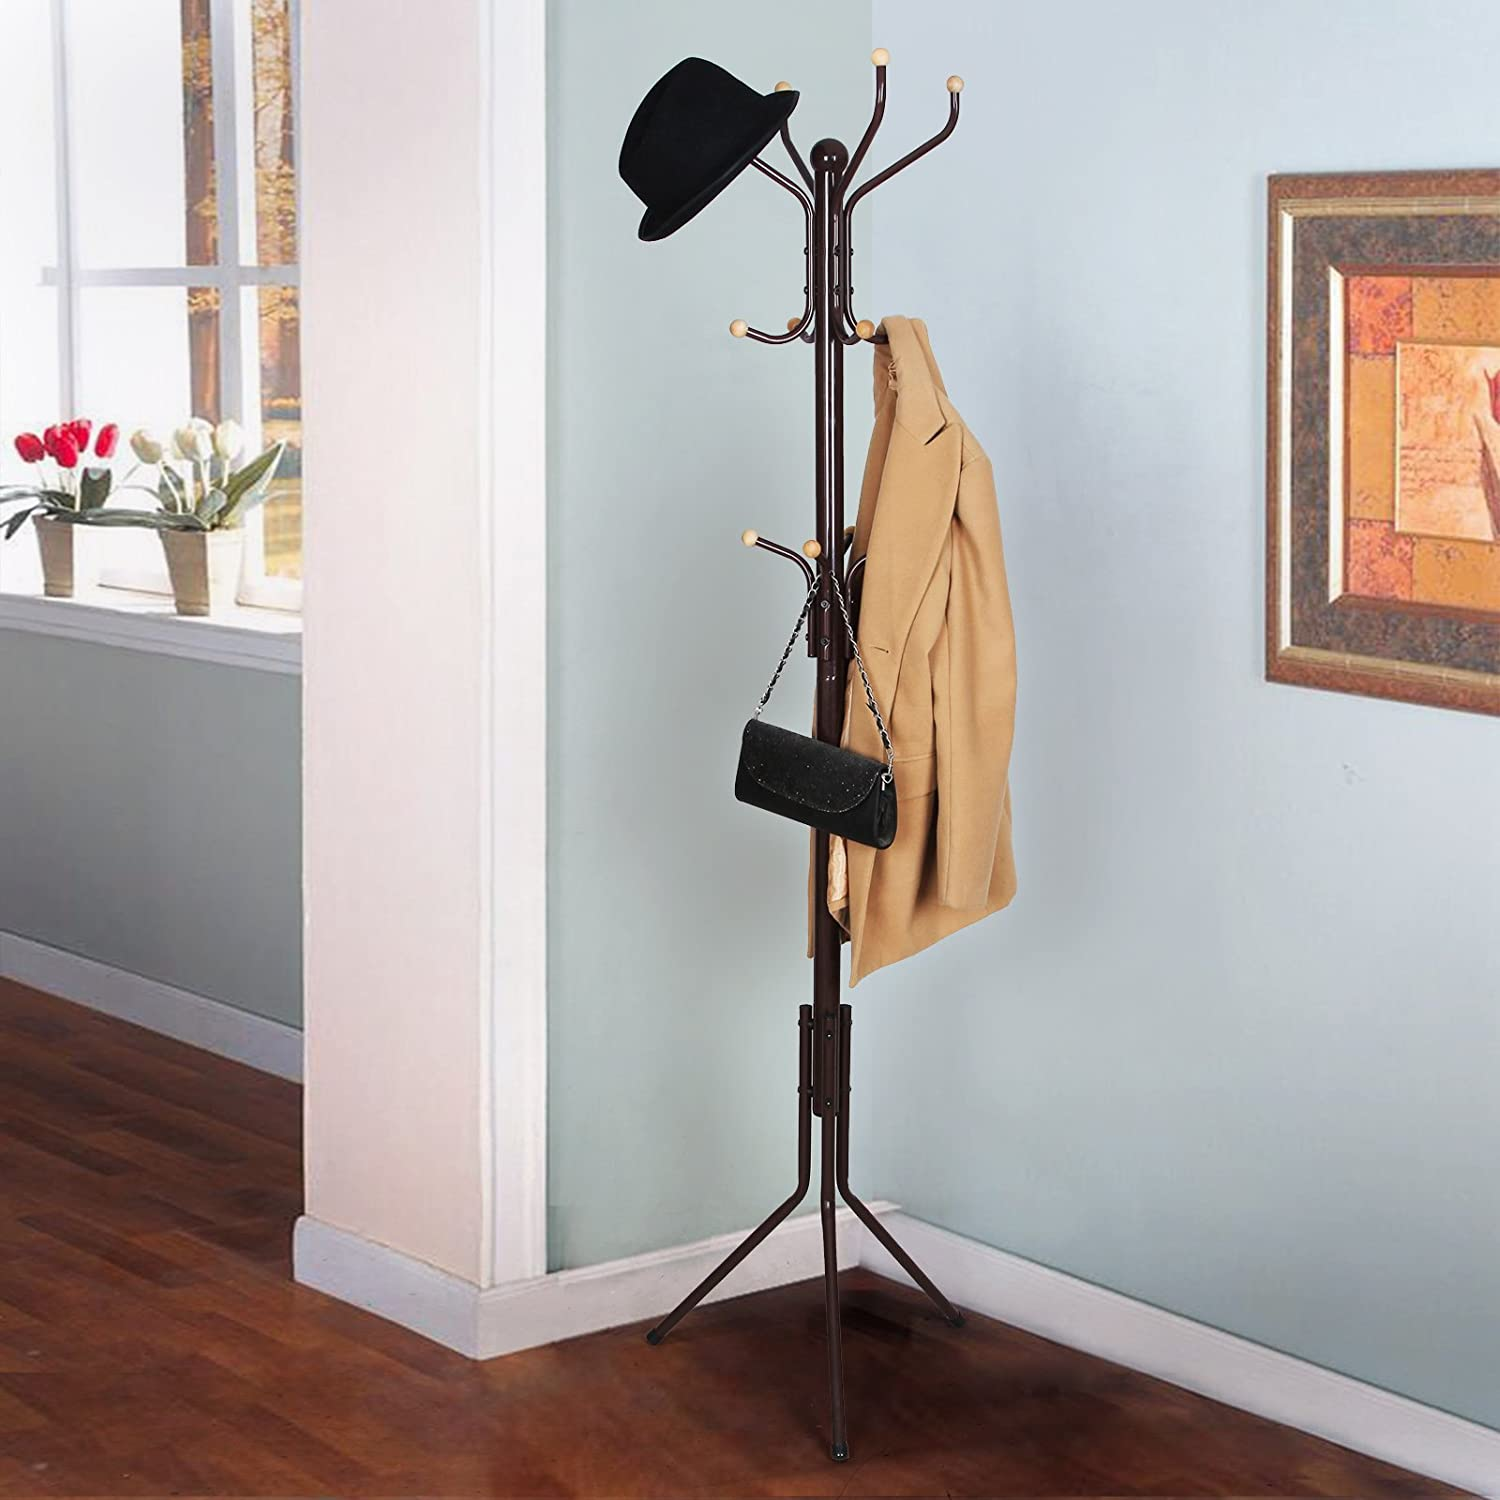 Amazoncom Songmics Metal Coat Rack 12 Hooks Display Hall Tree